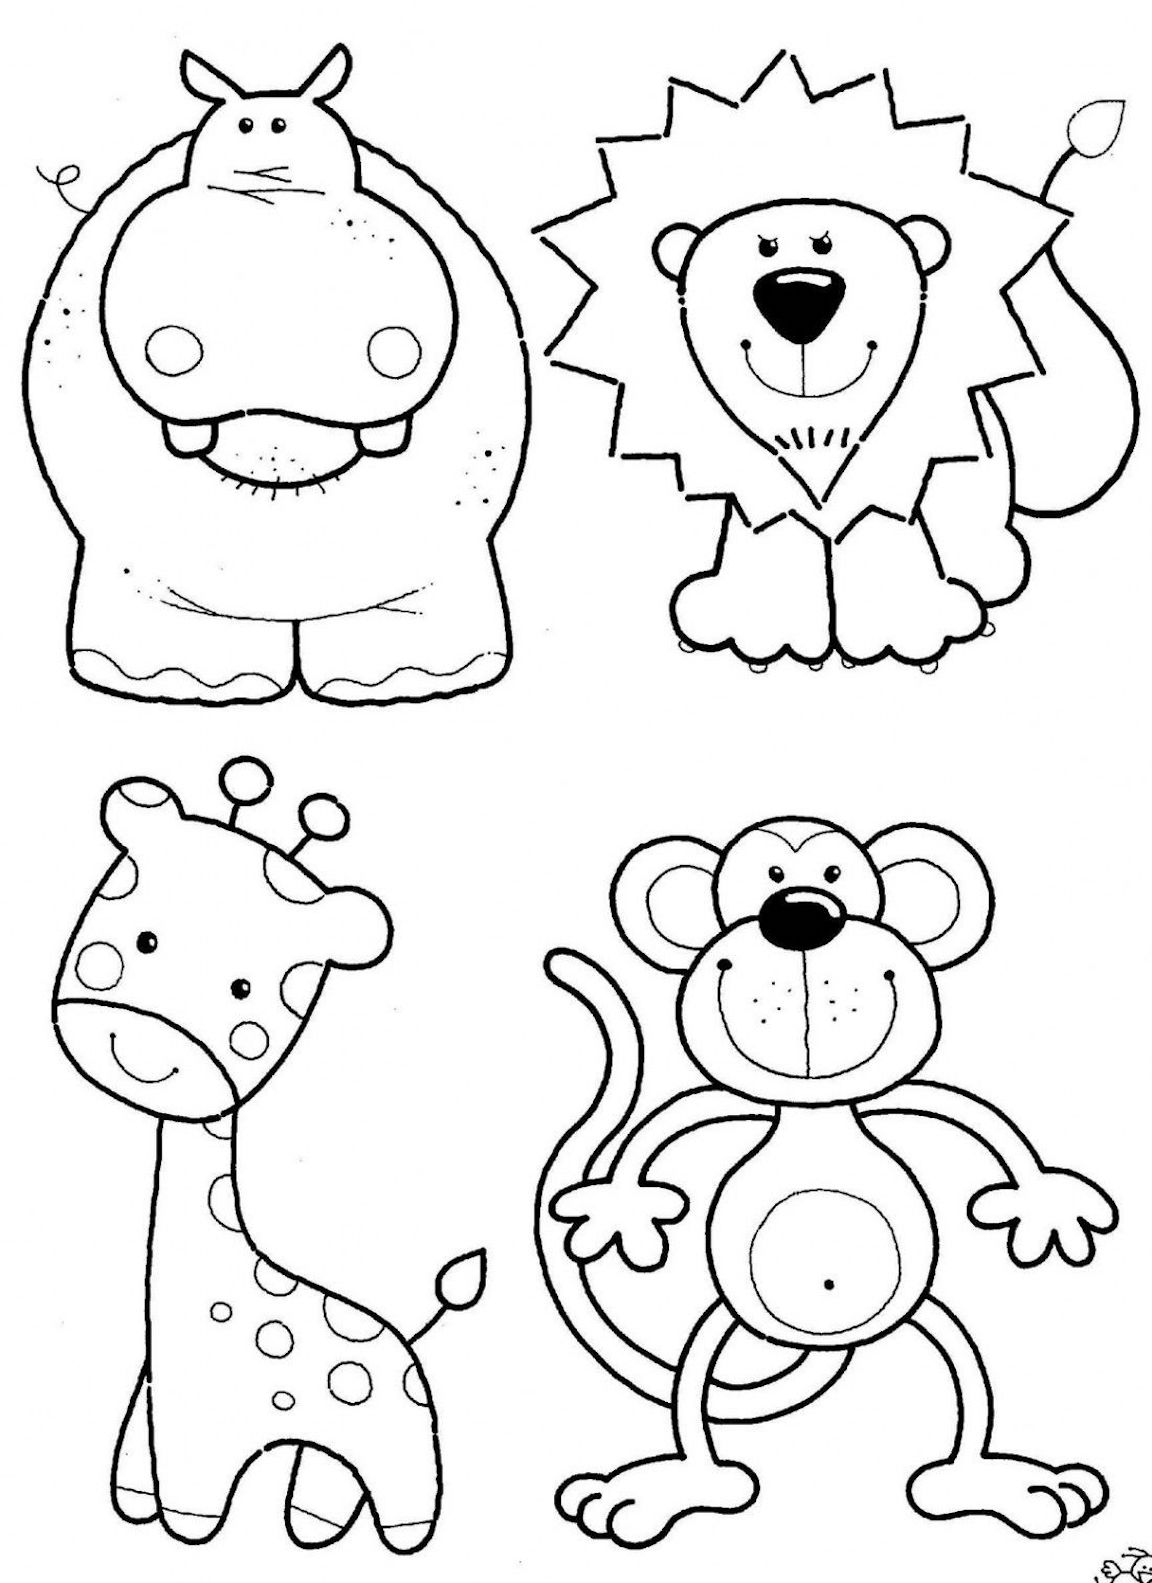 zoo animals coloring pictures baby safari coloring pages baby jungle animals coloring zoo animals pictures coloring